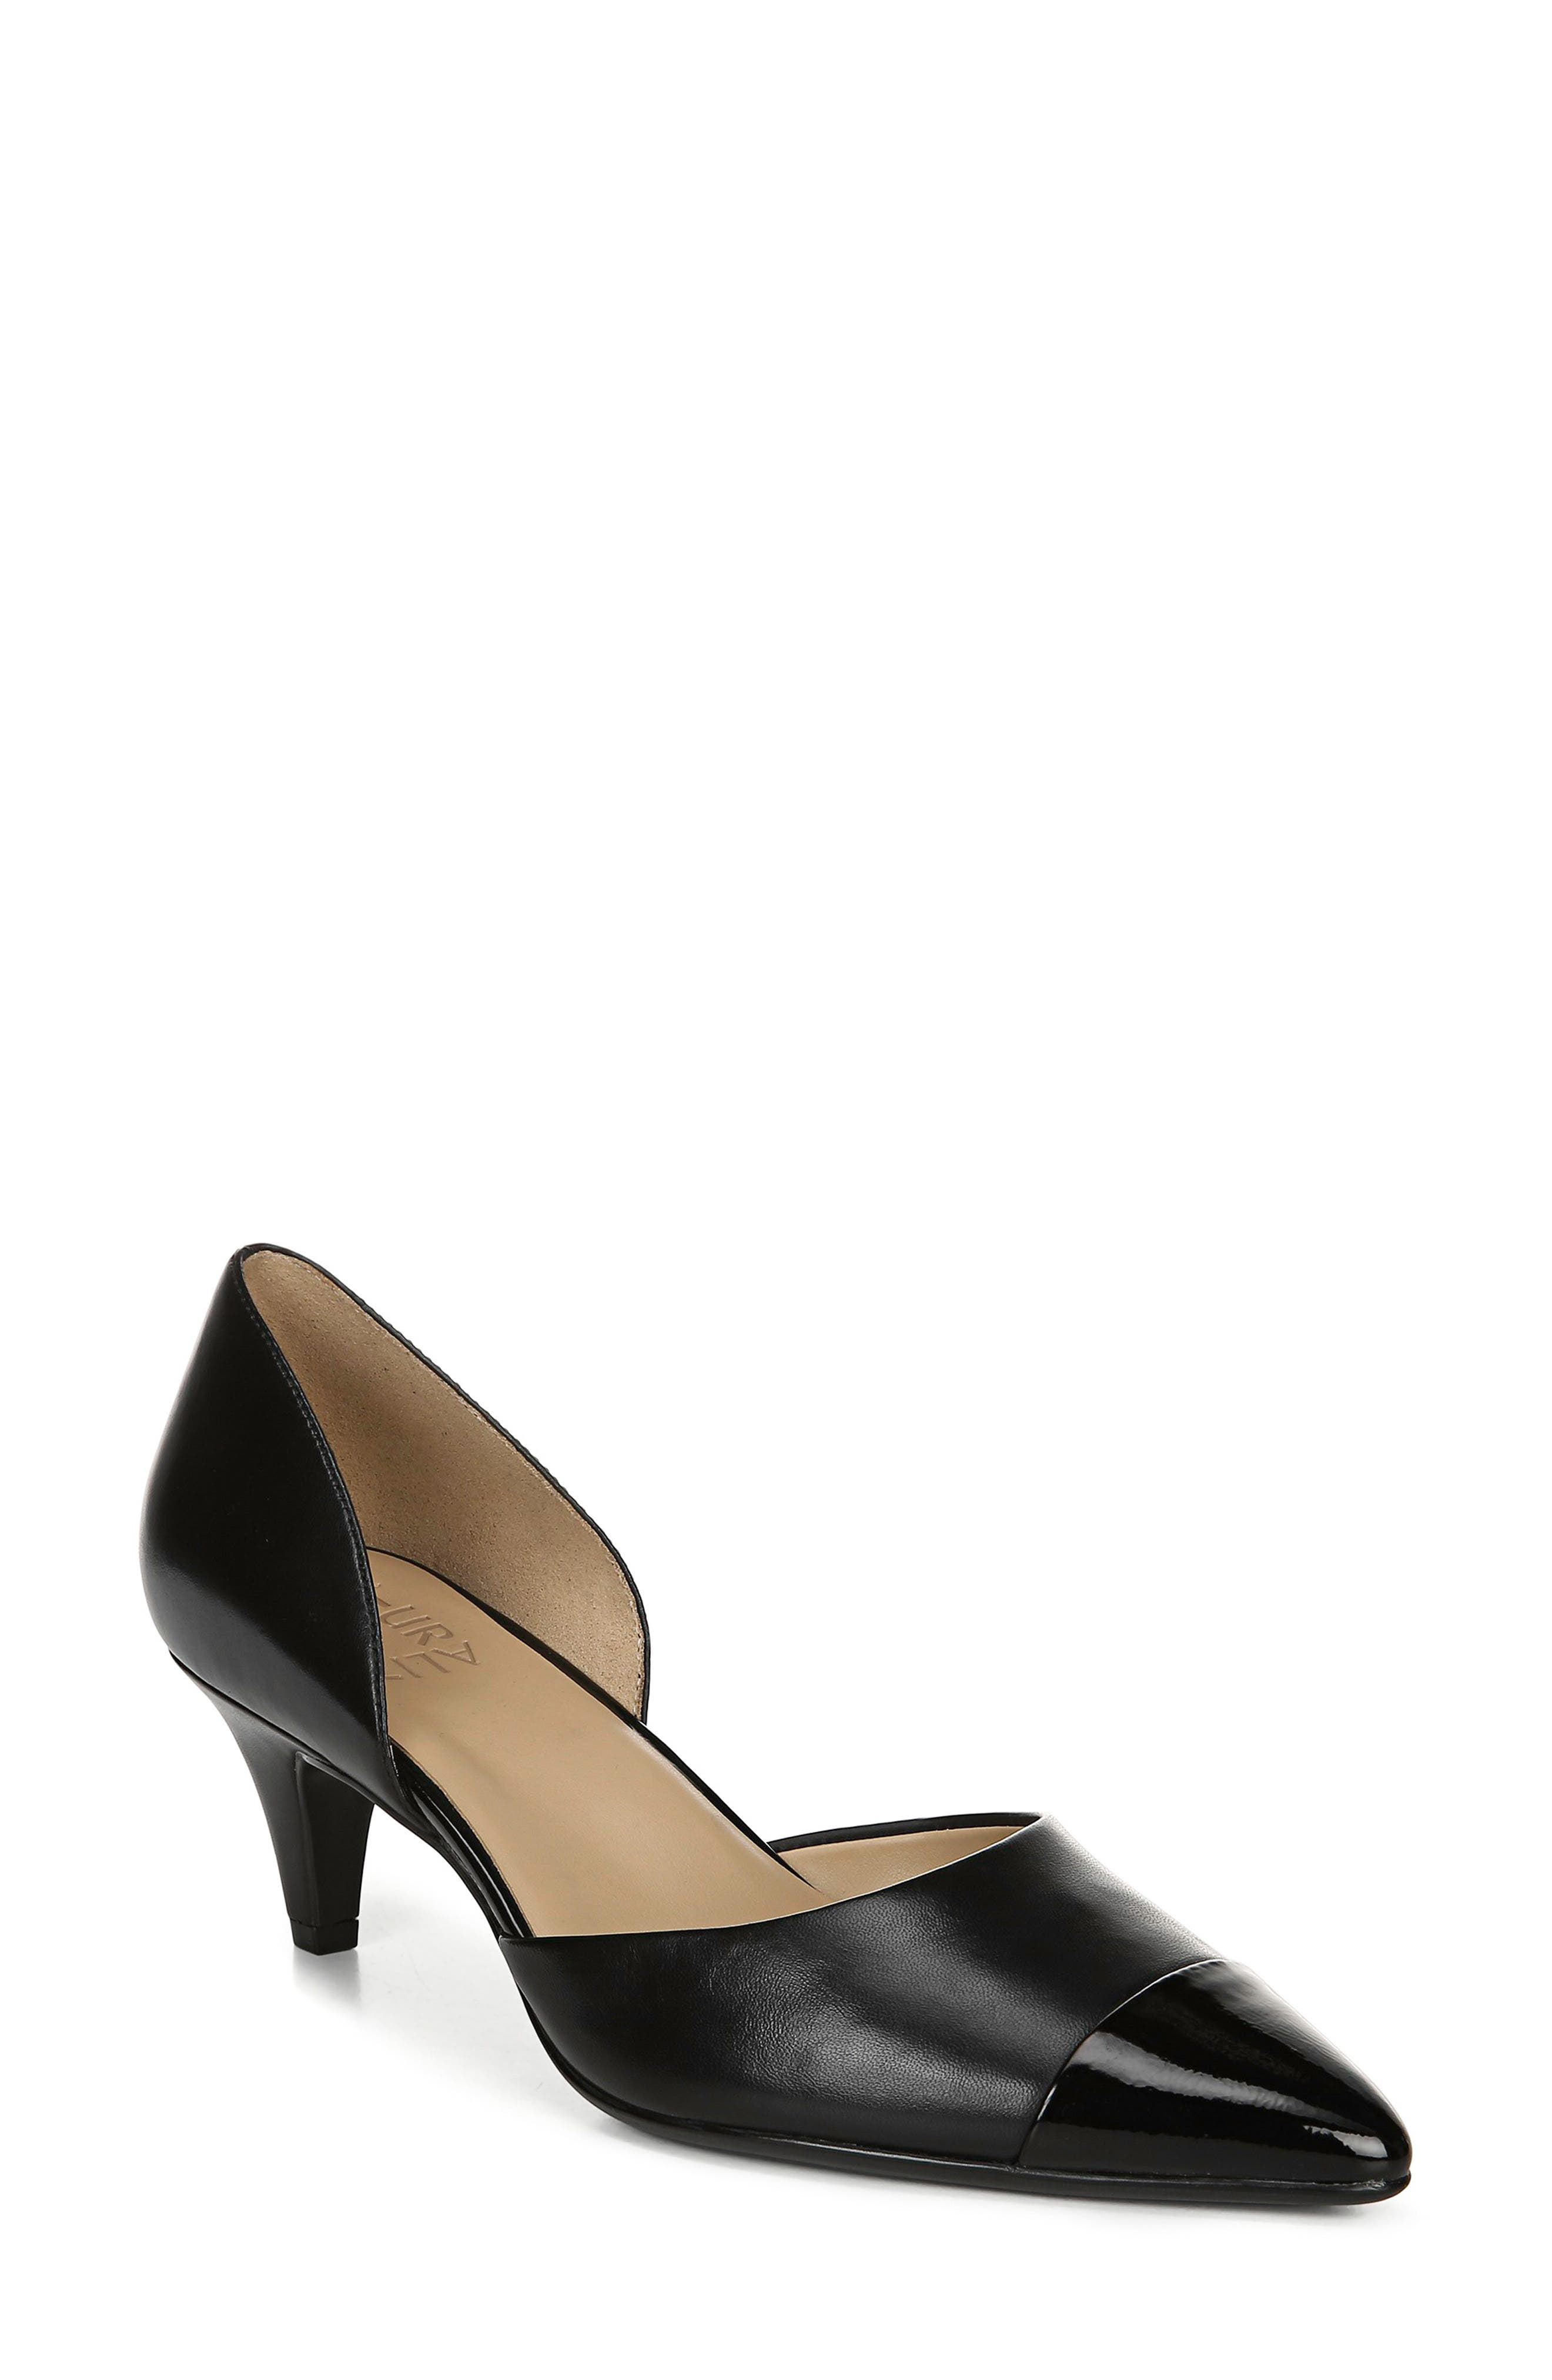 Naturalizer Barb Leather Pump N - Black